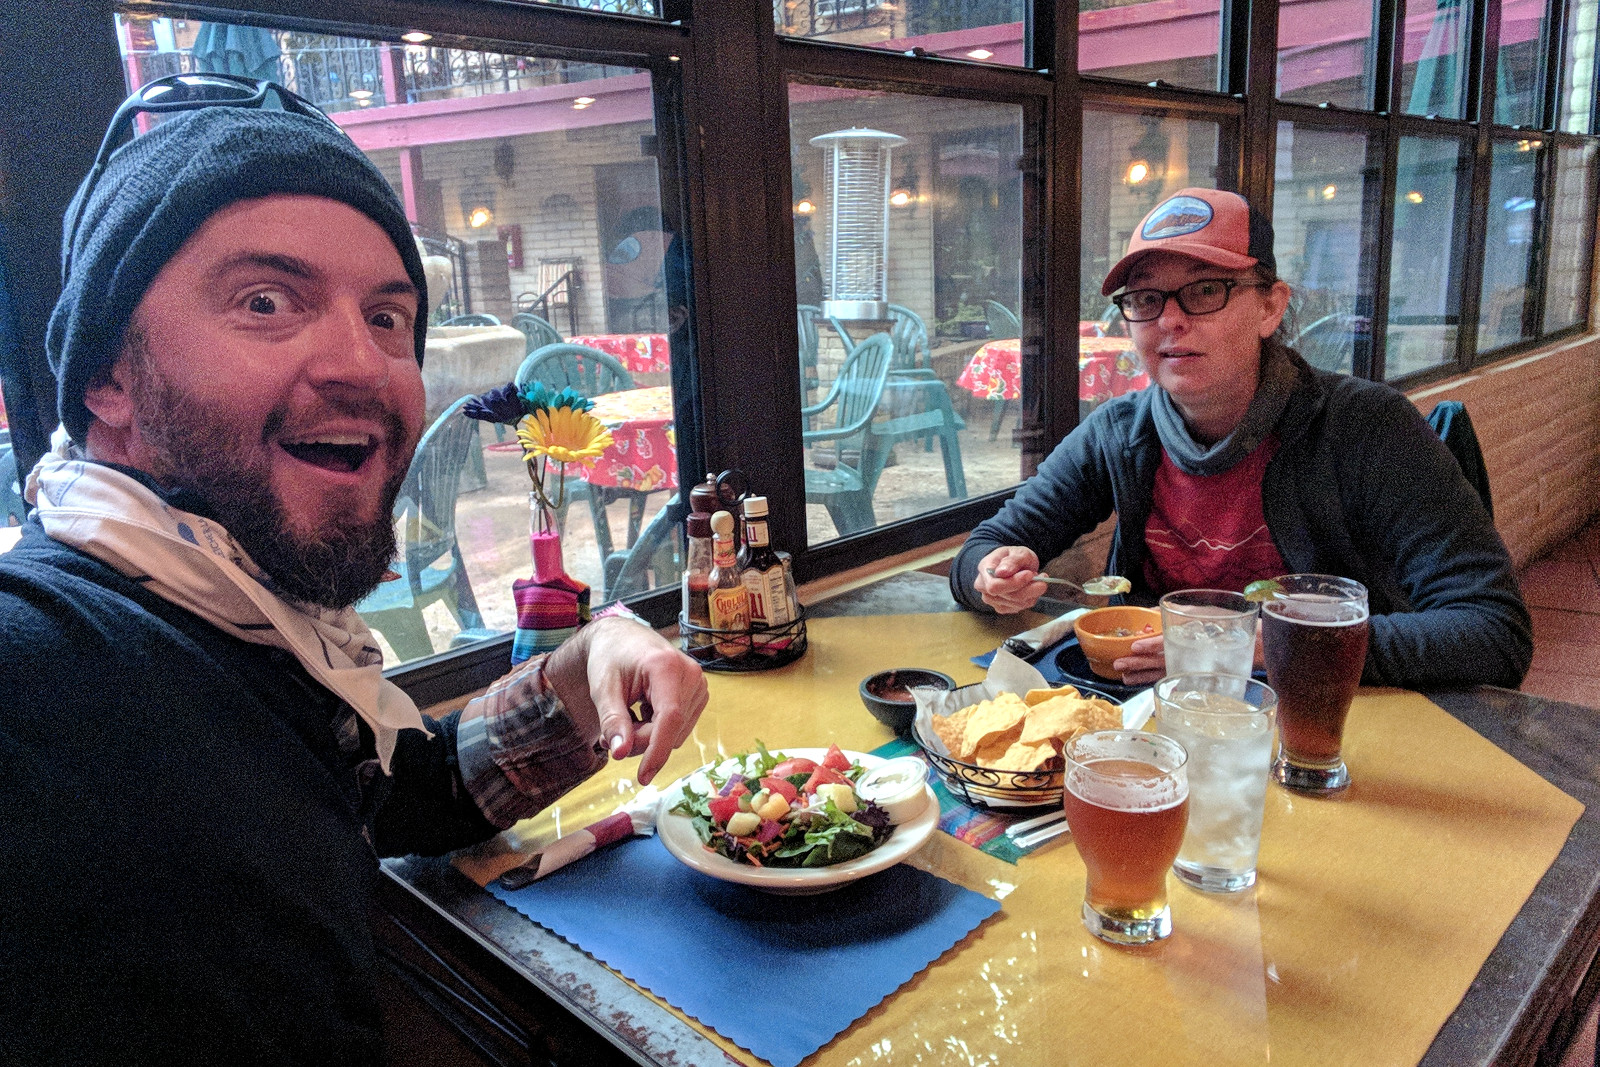 Dinner in Patagonia, AZ after 4 hellish days and 51 miles of backpacking the Arizona National Scenic Trail, NOBO